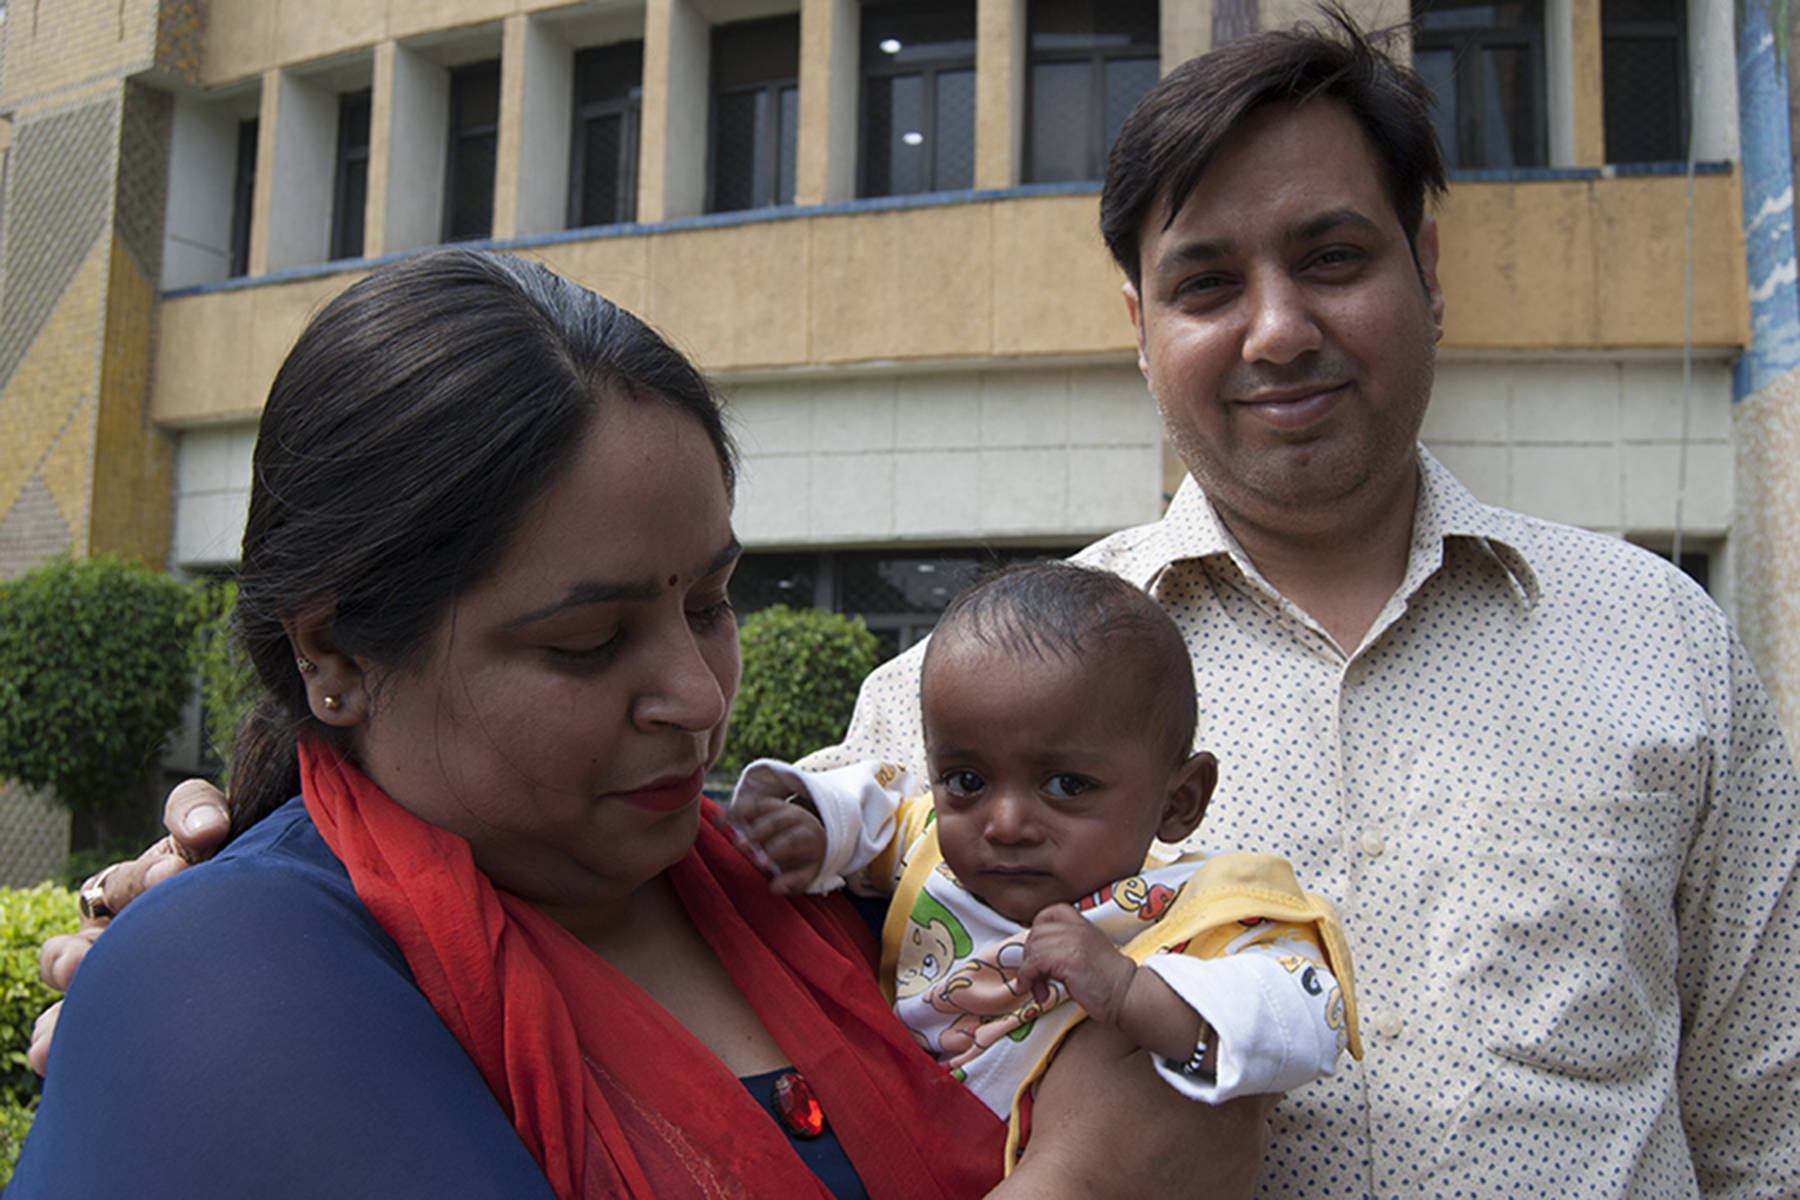 Anu Bhalla, mom, Pawan Bhalla dad, and baby Naksh Bhalla. The baby is the surviving one of two twins born prematurely. He successfully fought off a drug-resistant infection.